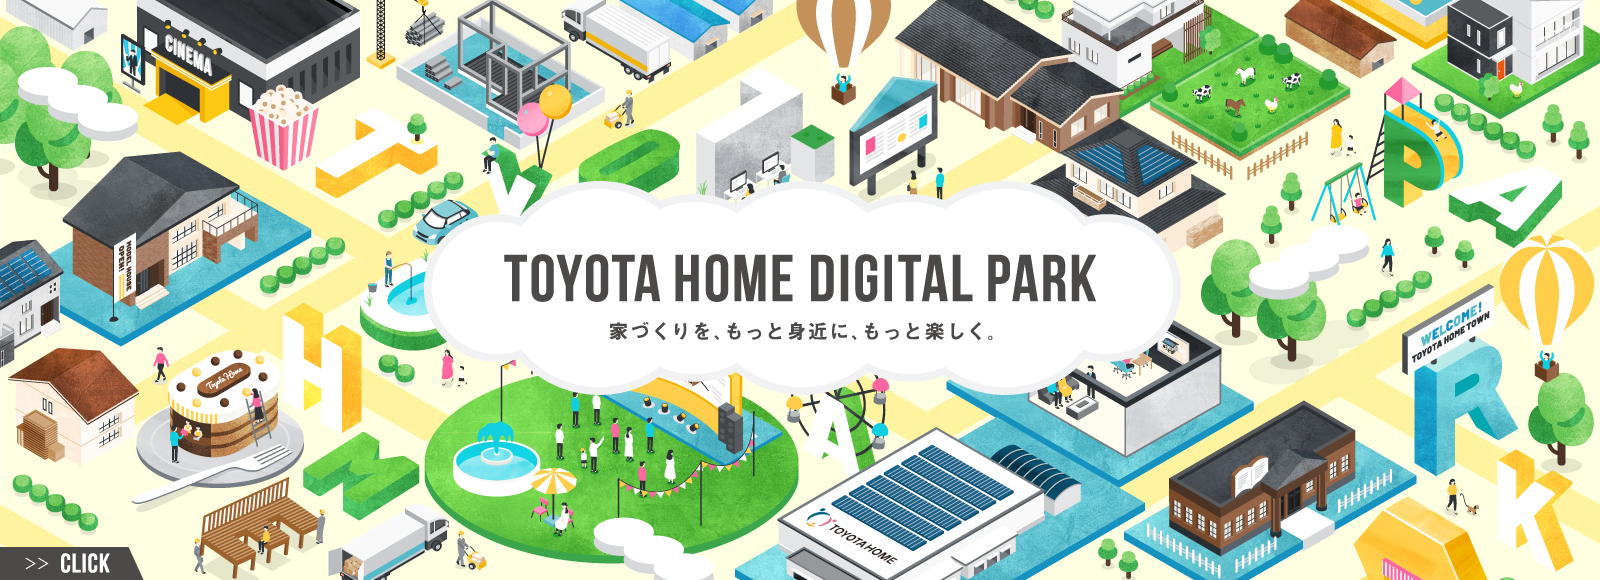 TOYOTA HOME DIGITAL PARK